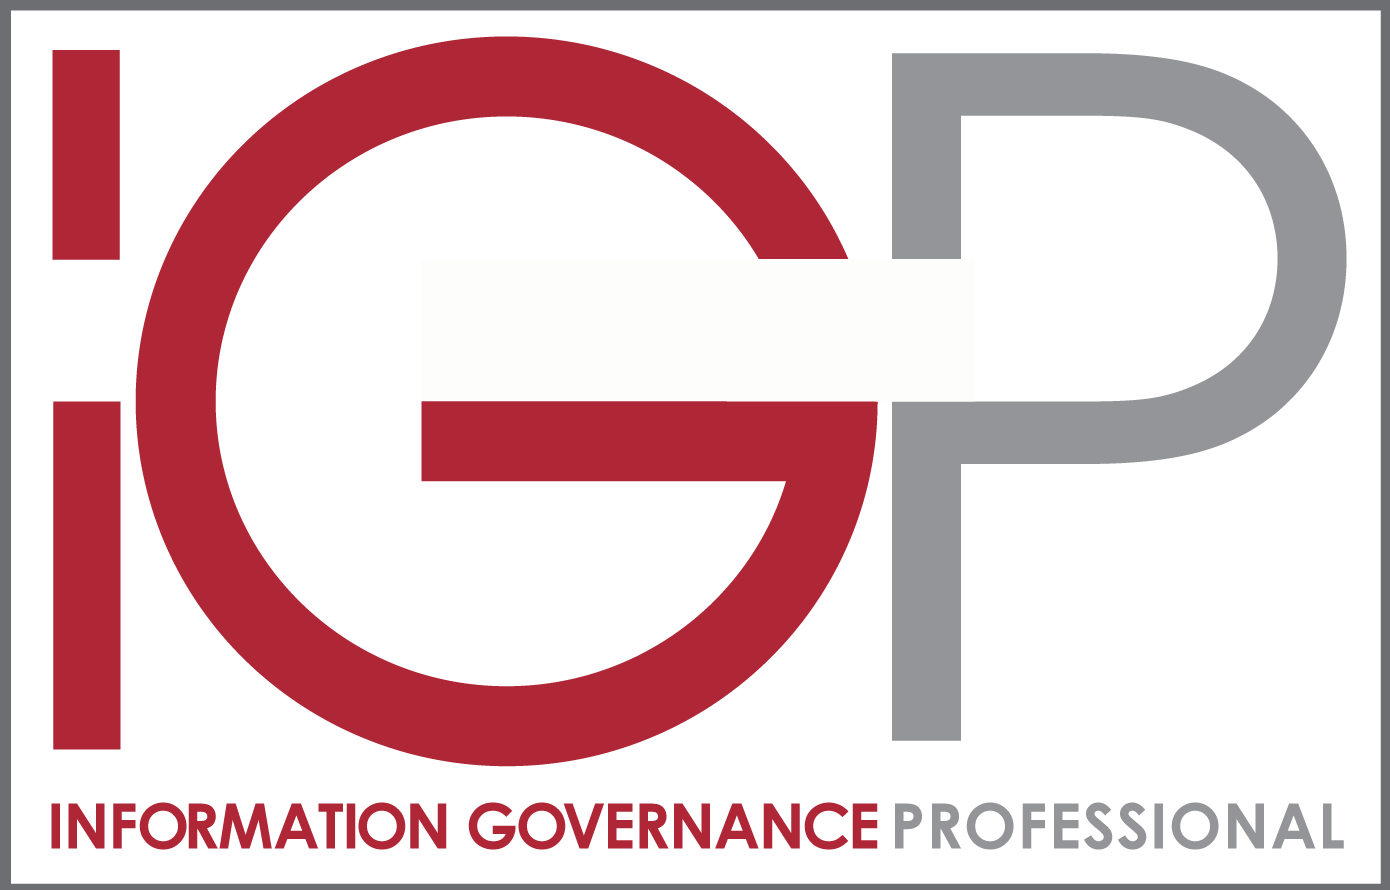 Certified Information Governance Professional